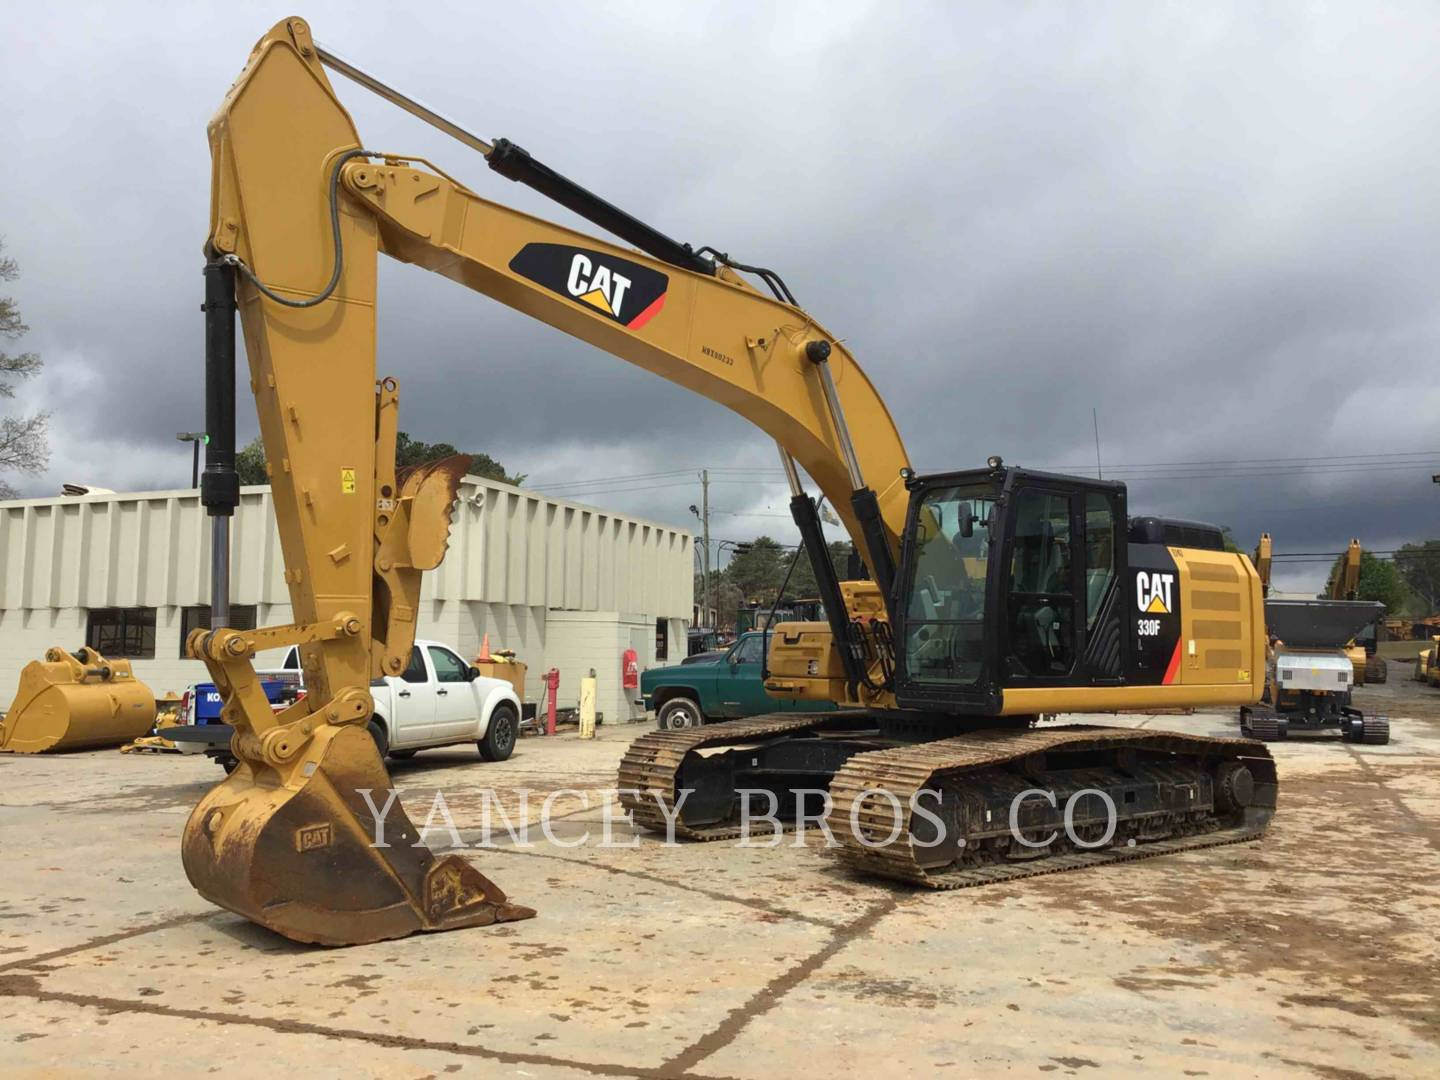 2016 - CATERPILLAR - 330FL